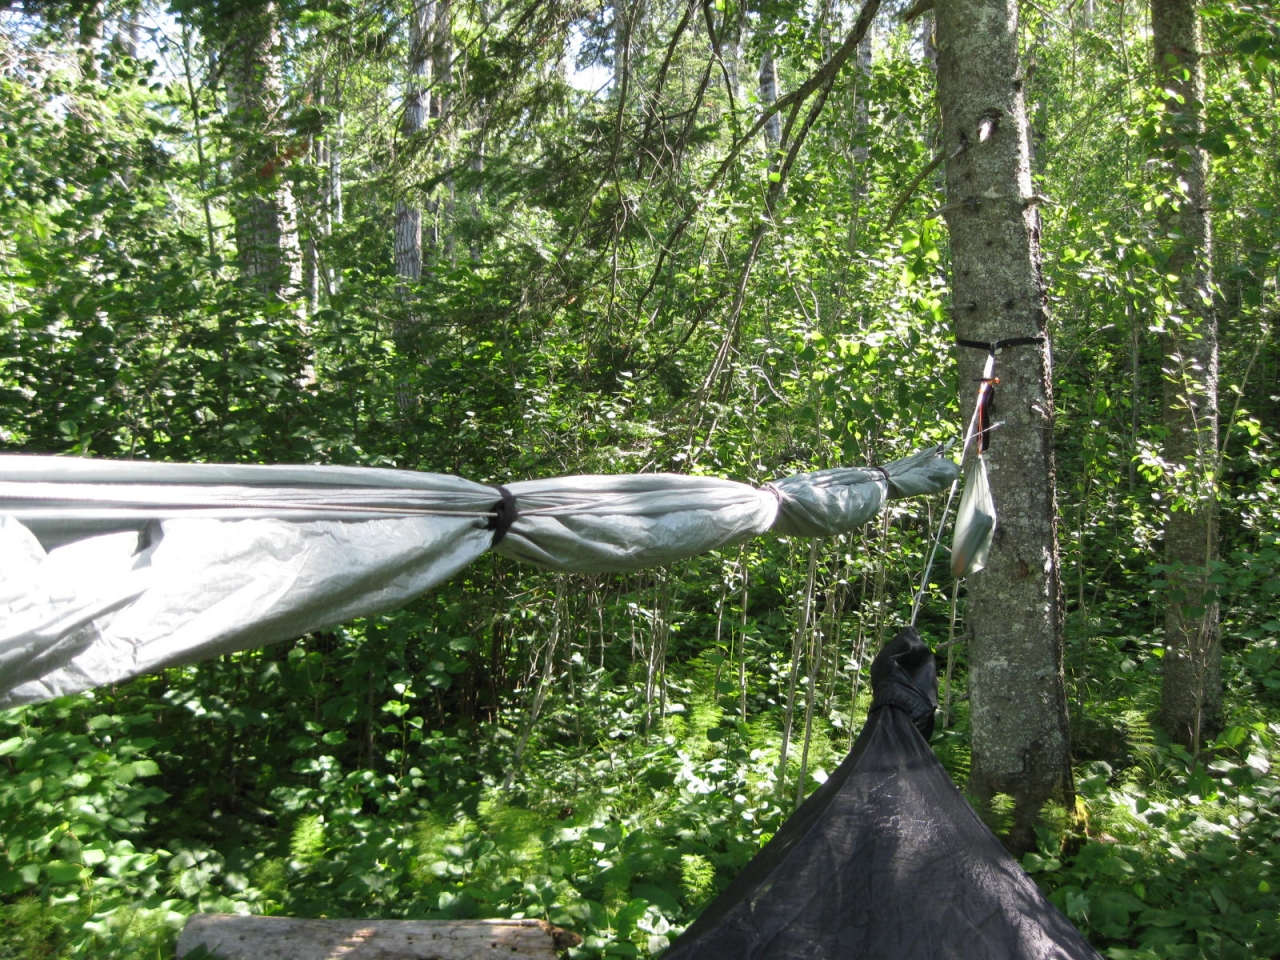 Cable Ties For Securing Tarp